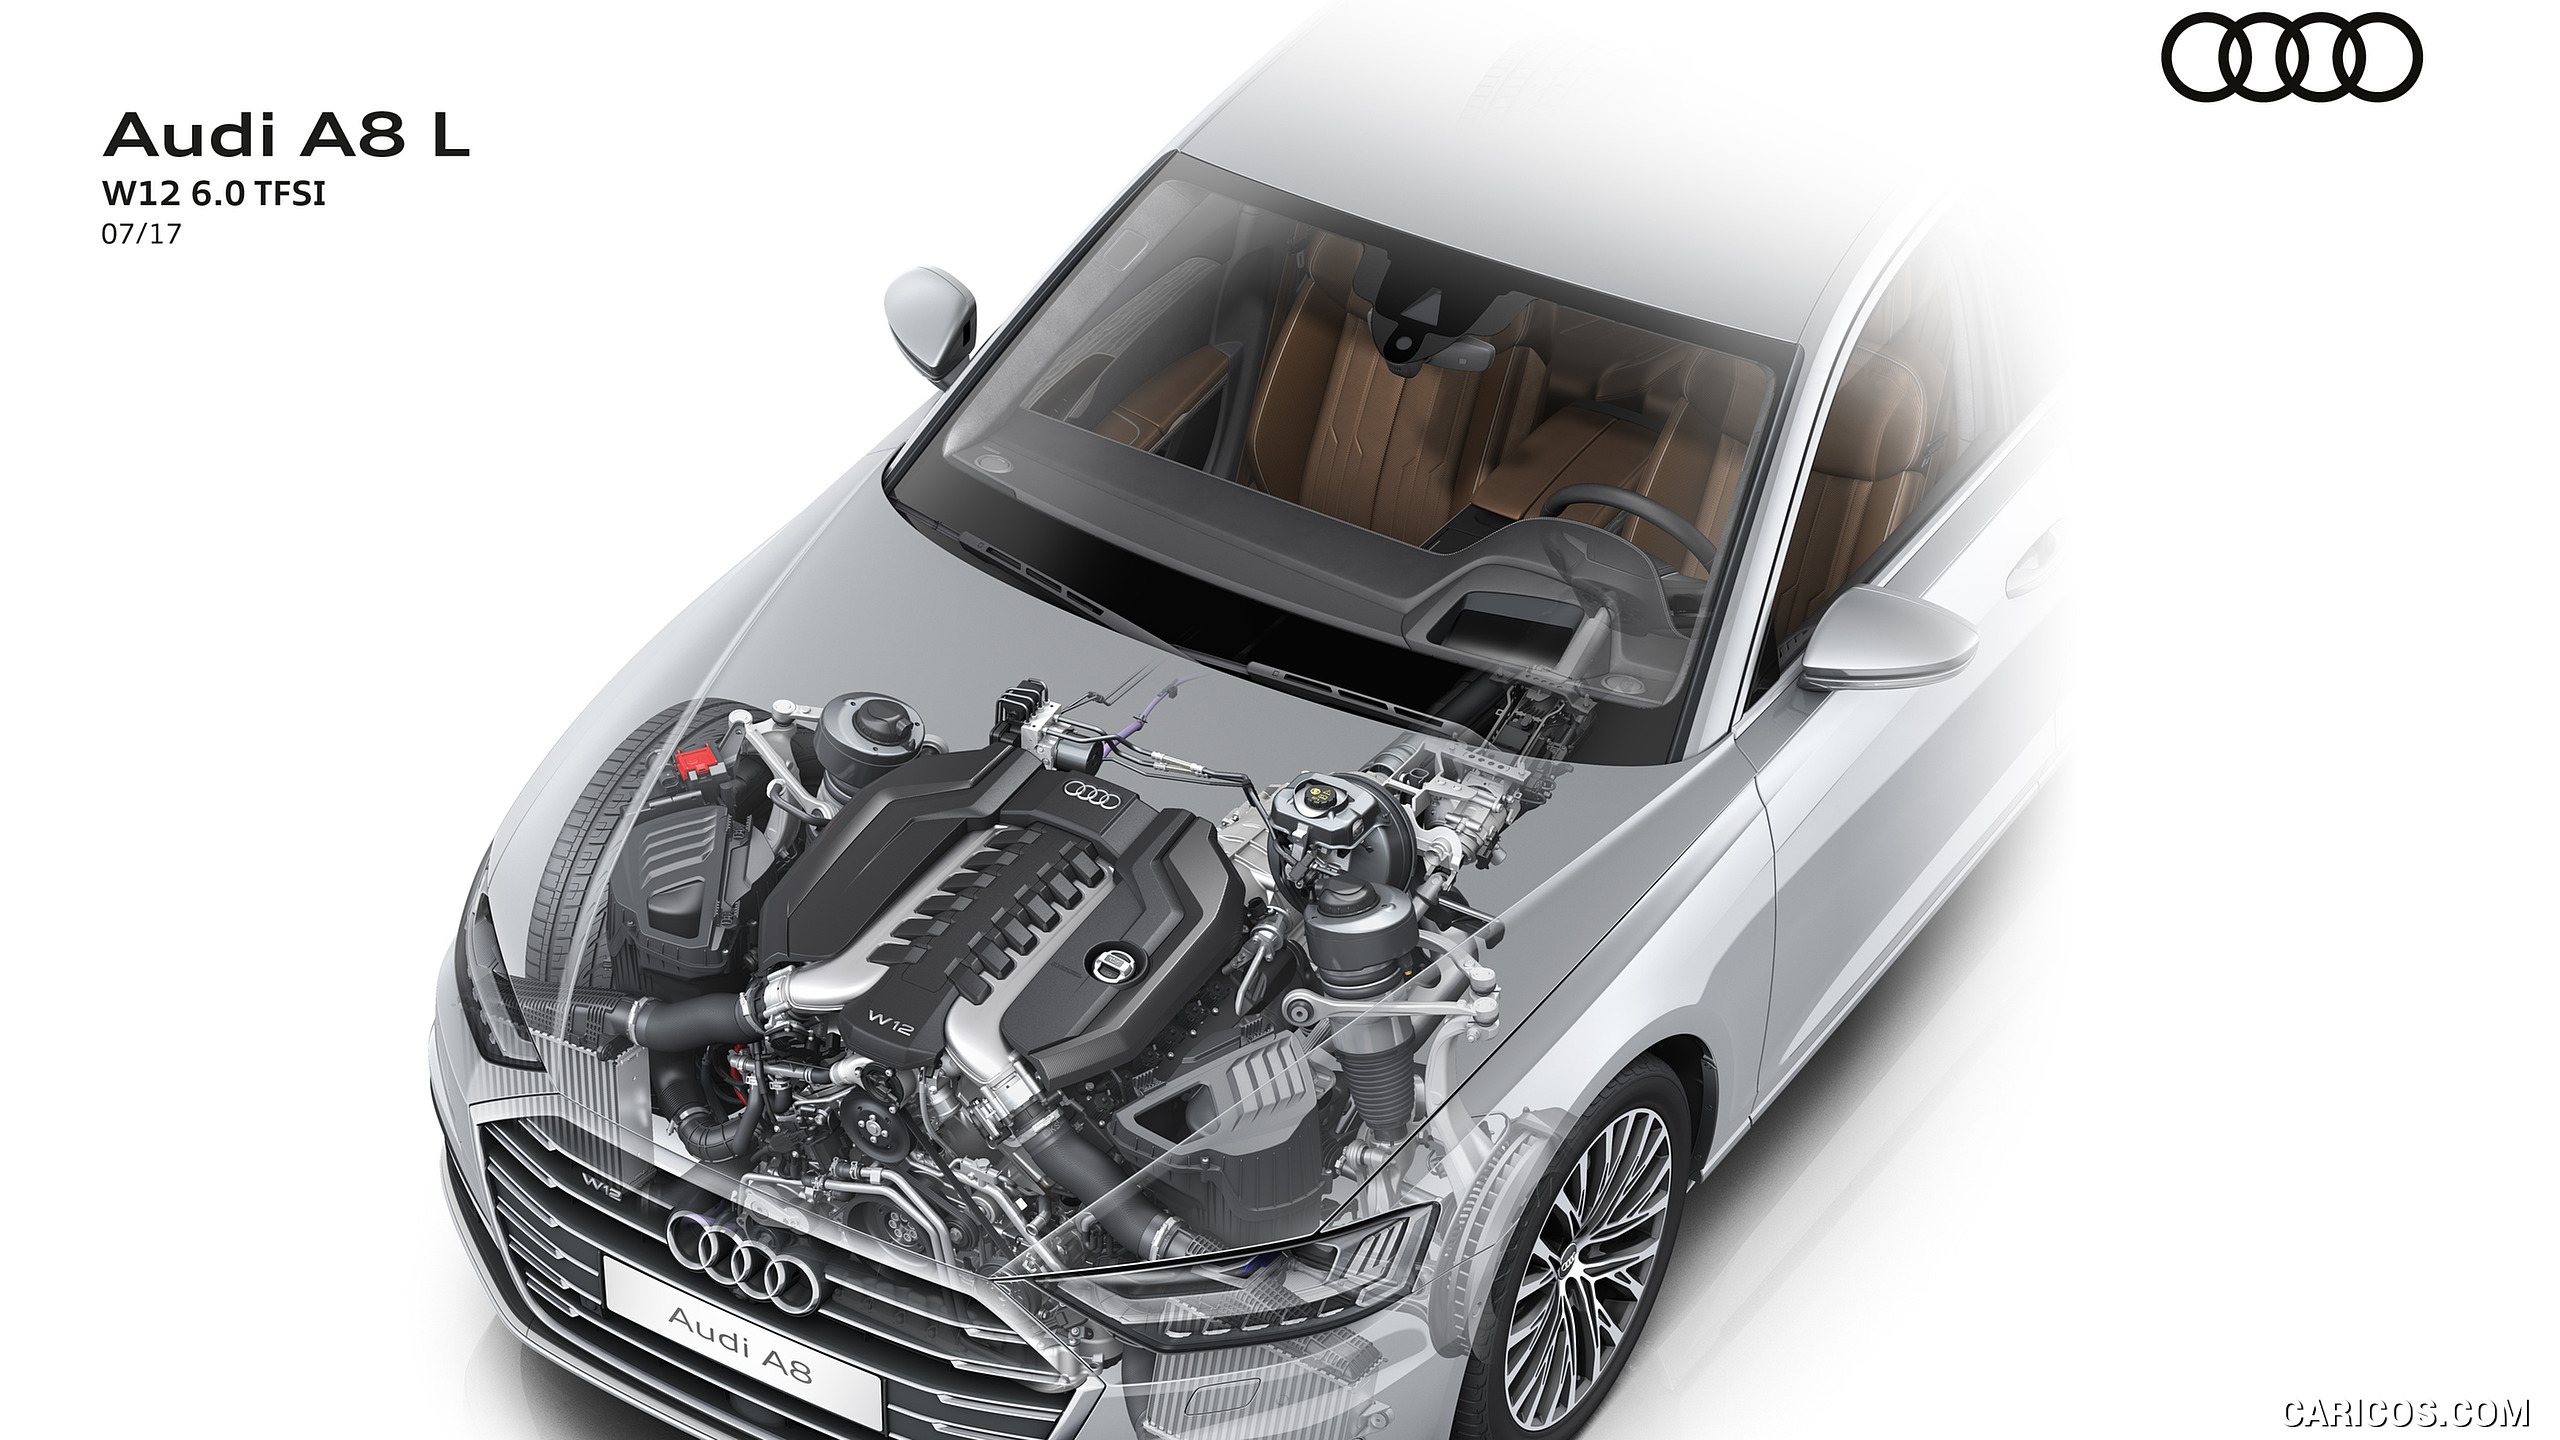 2018 Audi A8   W12 60 TFSI Engine HD Wallpaper 60 2560x1440